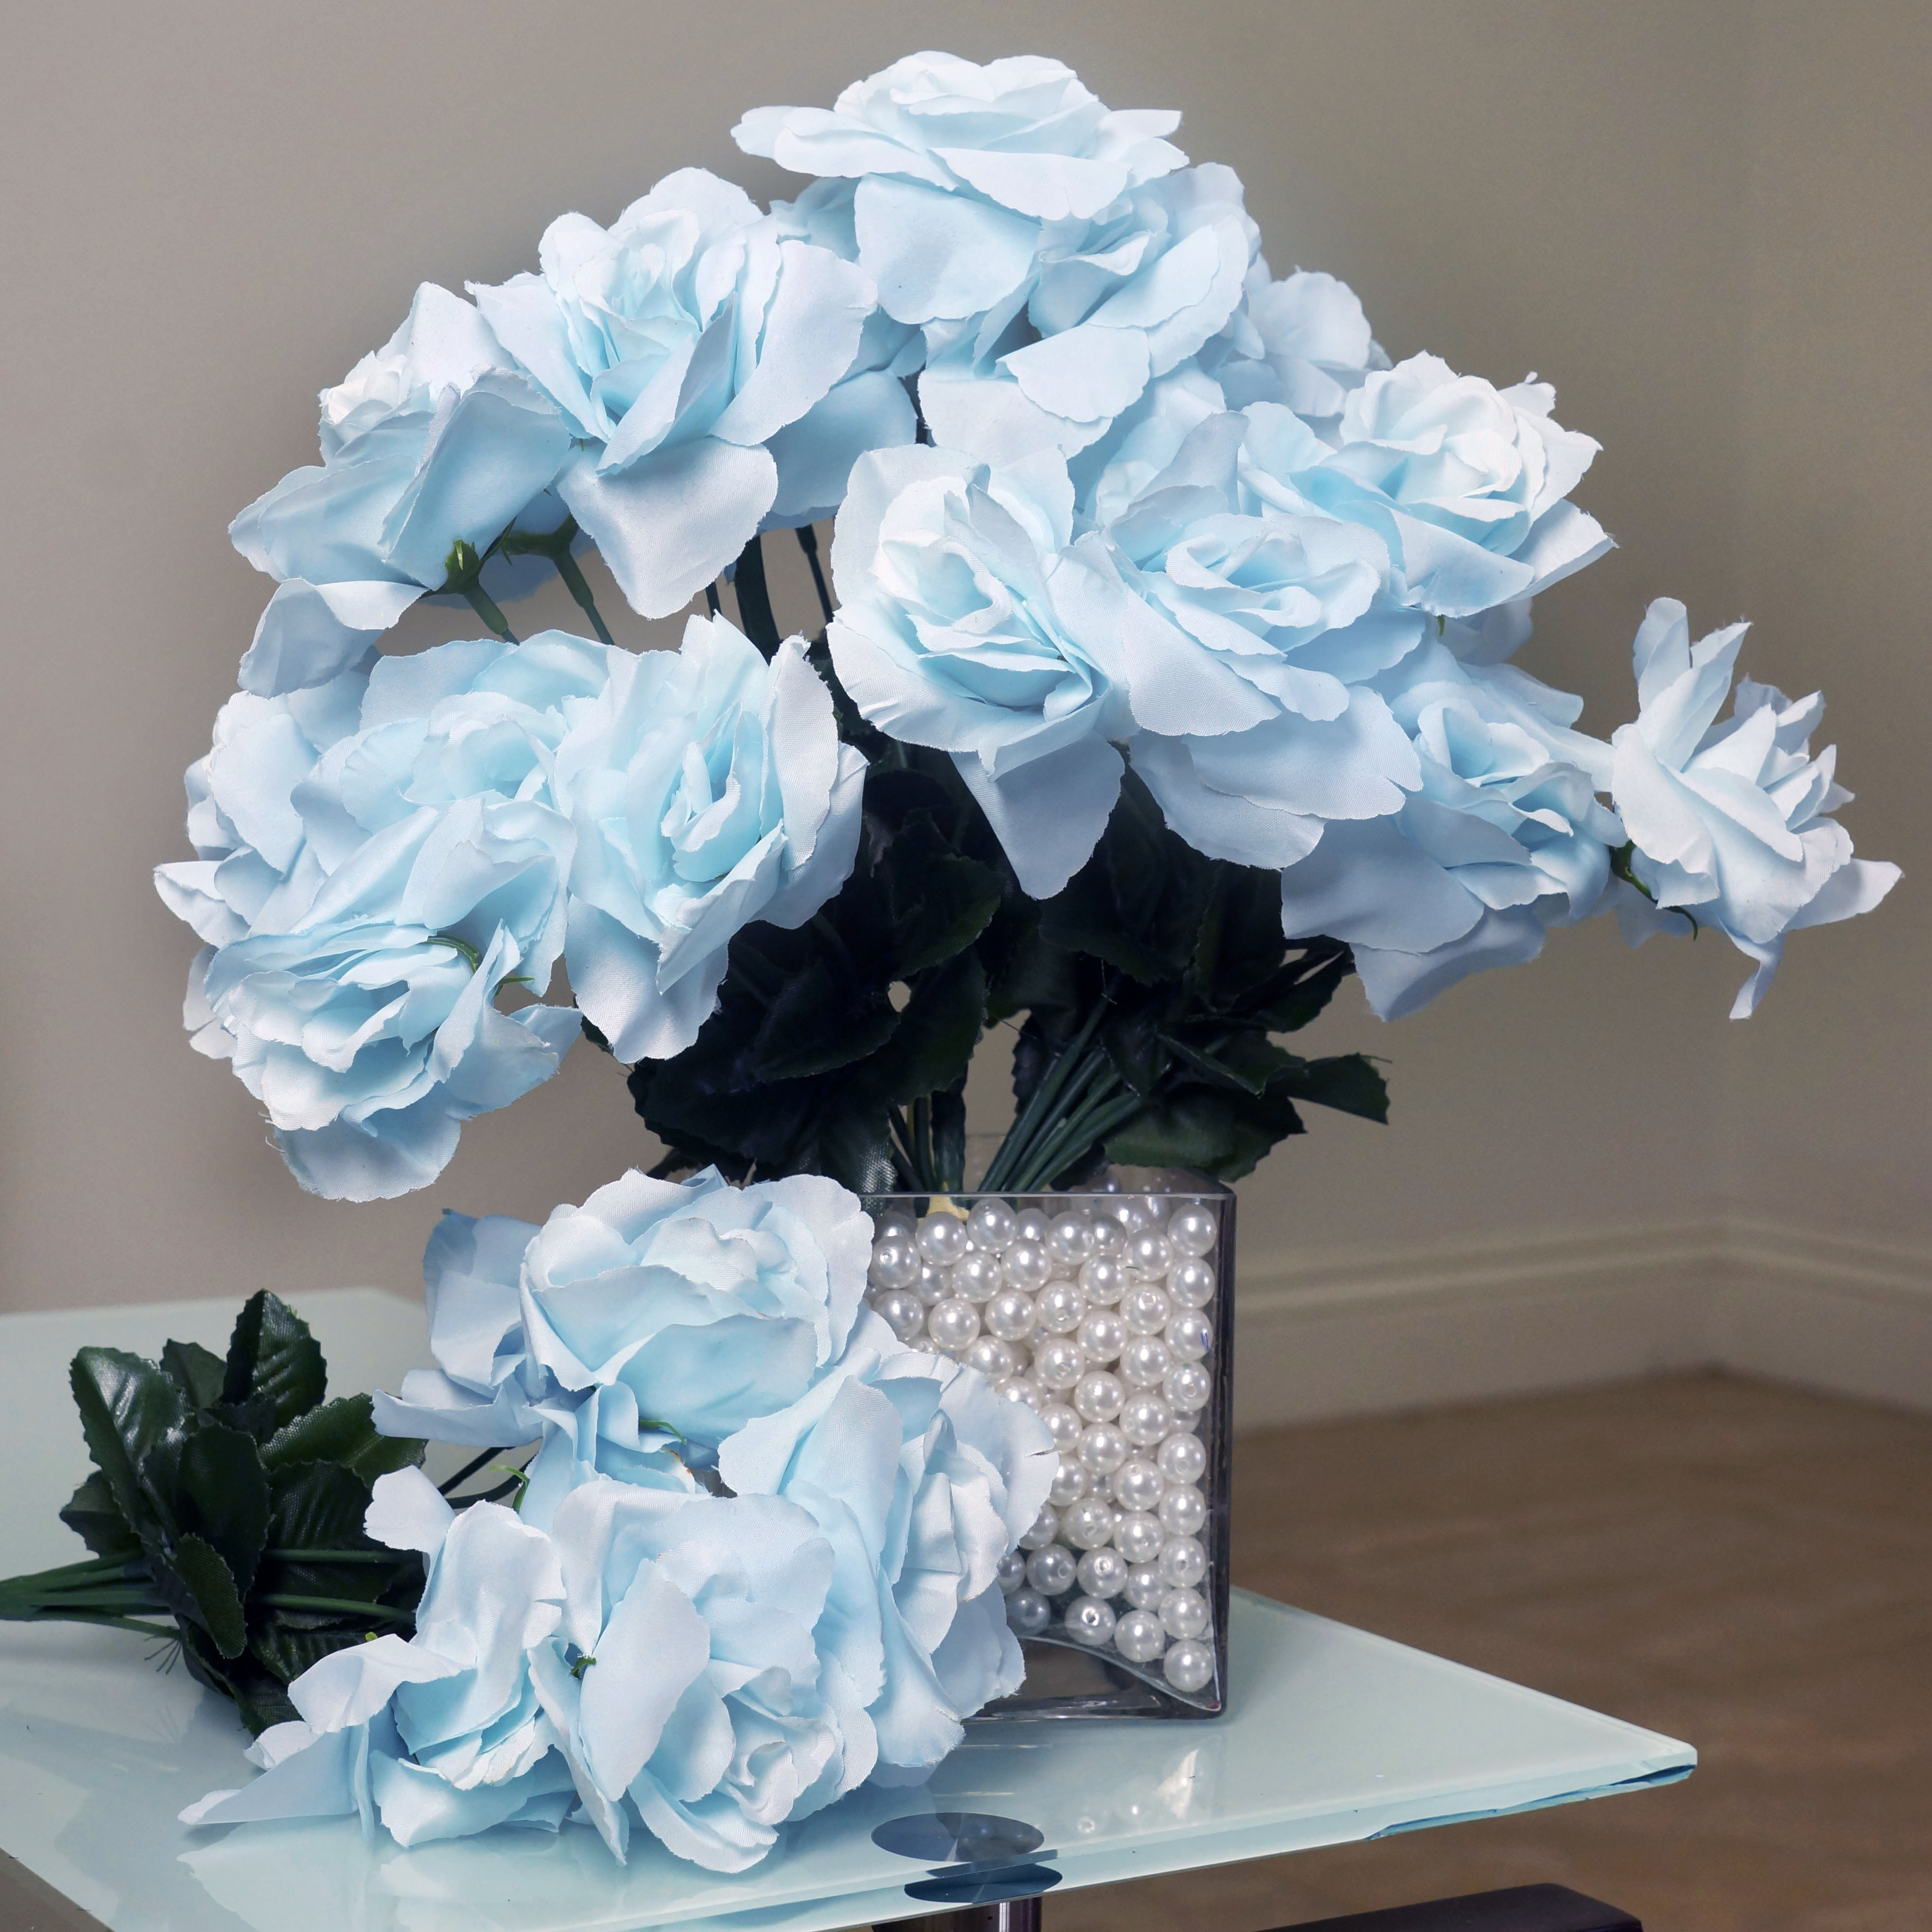 84 Artificial Open Roses Wedding Flowers Bouquets | eBay